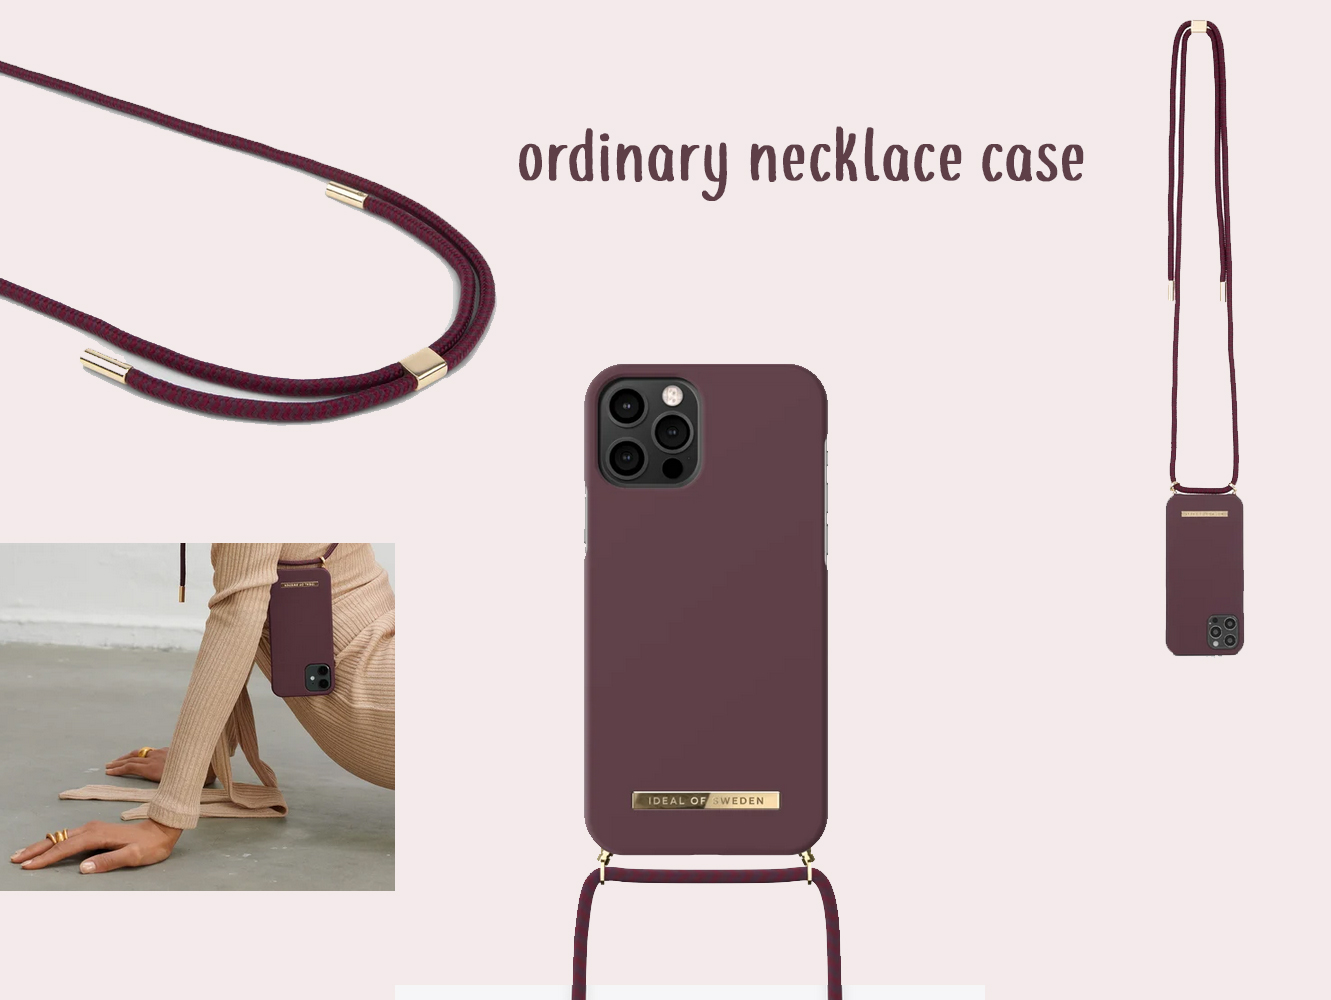 ordinary necklace case ideal of sweden